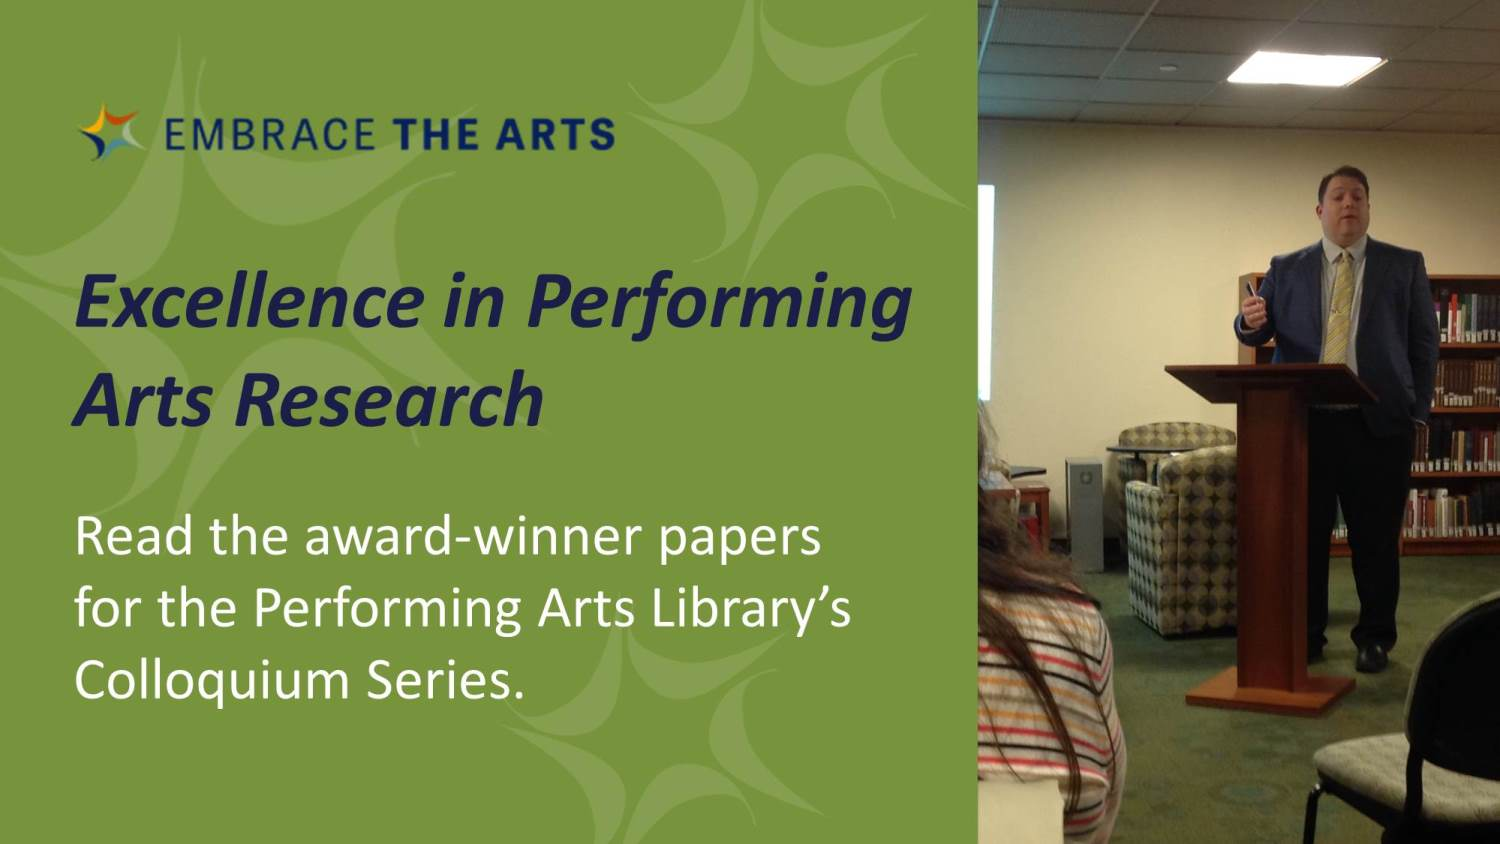 Excellence in Performing Arts Research